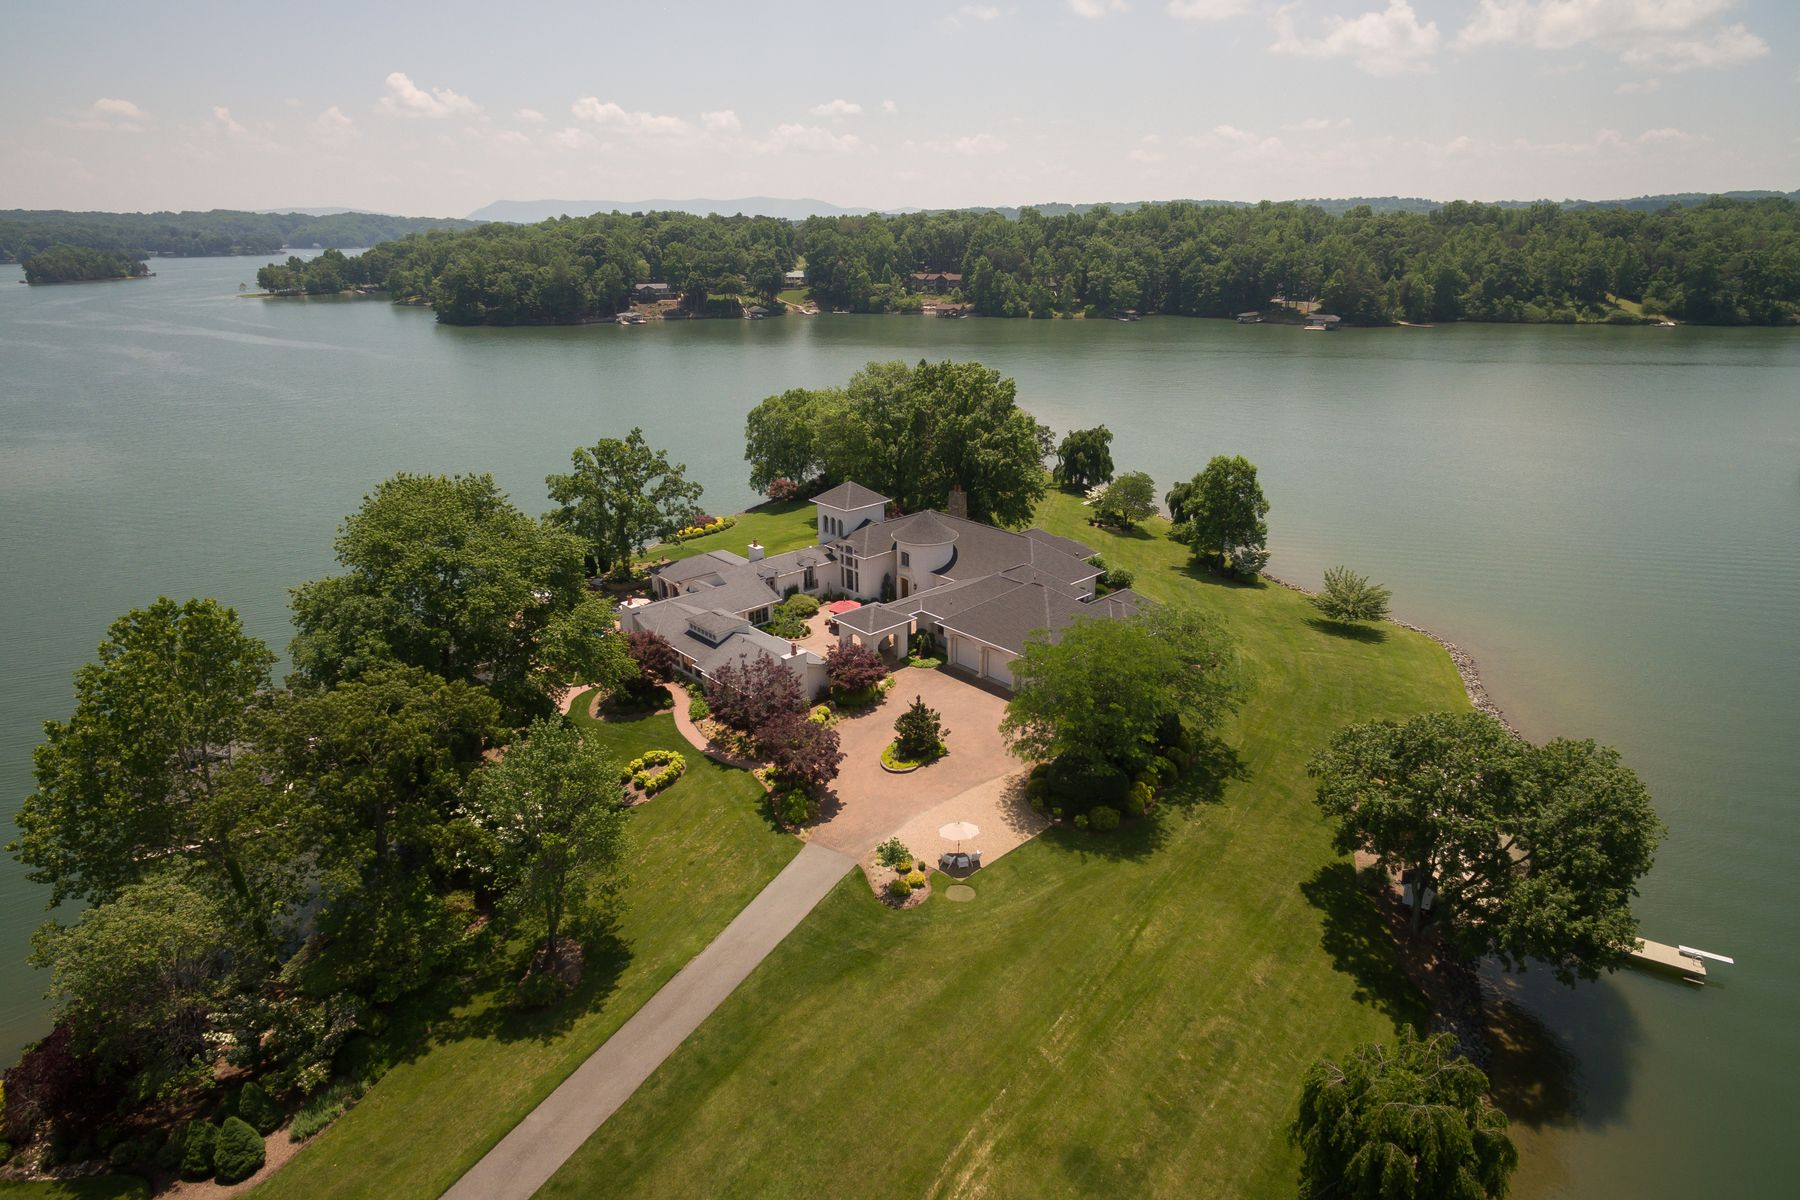 Villa per Vendita alle ore Smith Mountain Lake Estate 1994 Merriman Way Dr Moneta, Virginia, 24121 Stati Uniti